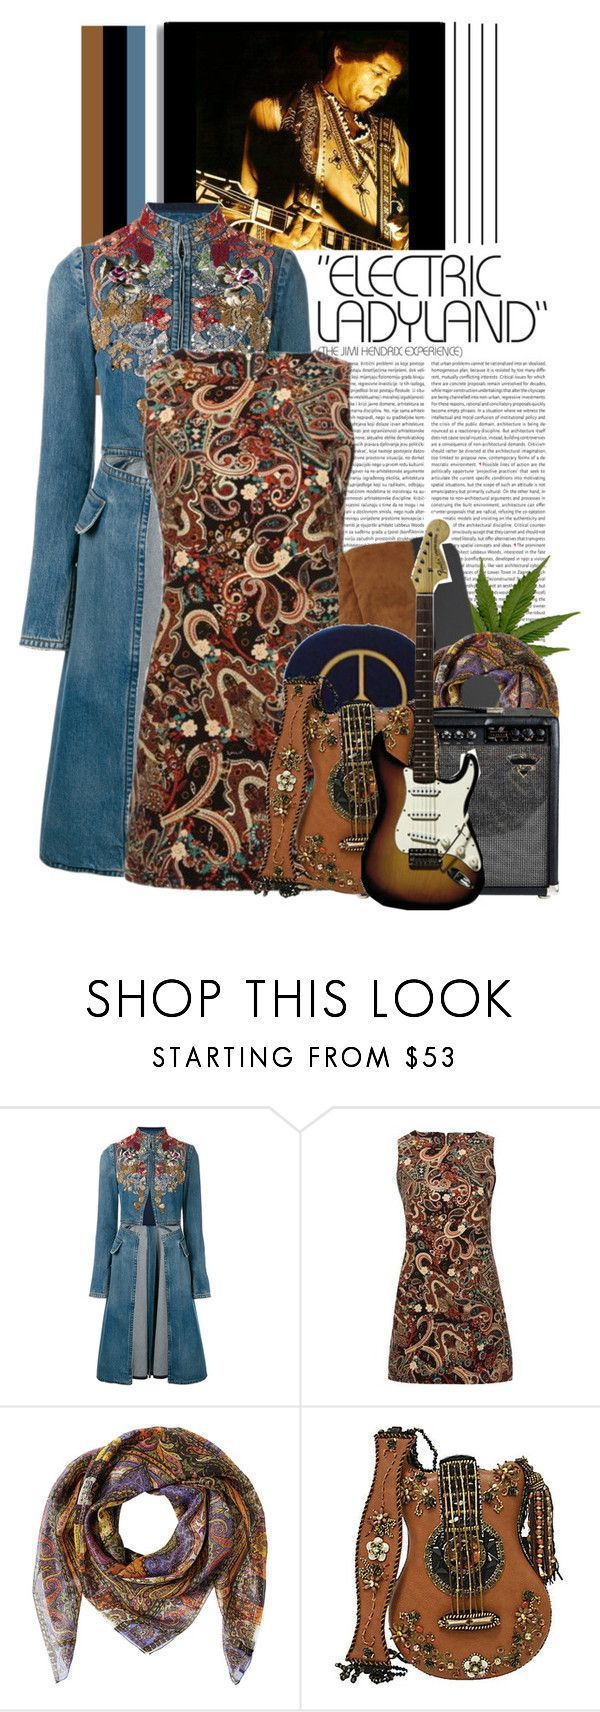 """""""Electric Ladyland (The Jimi Hendrix Experience)"""" by jleigh329 ❤ liked on Polyvore featuring Alexander McQueen, Etro, Emilio Pucci and Mary Frances Accessories"""